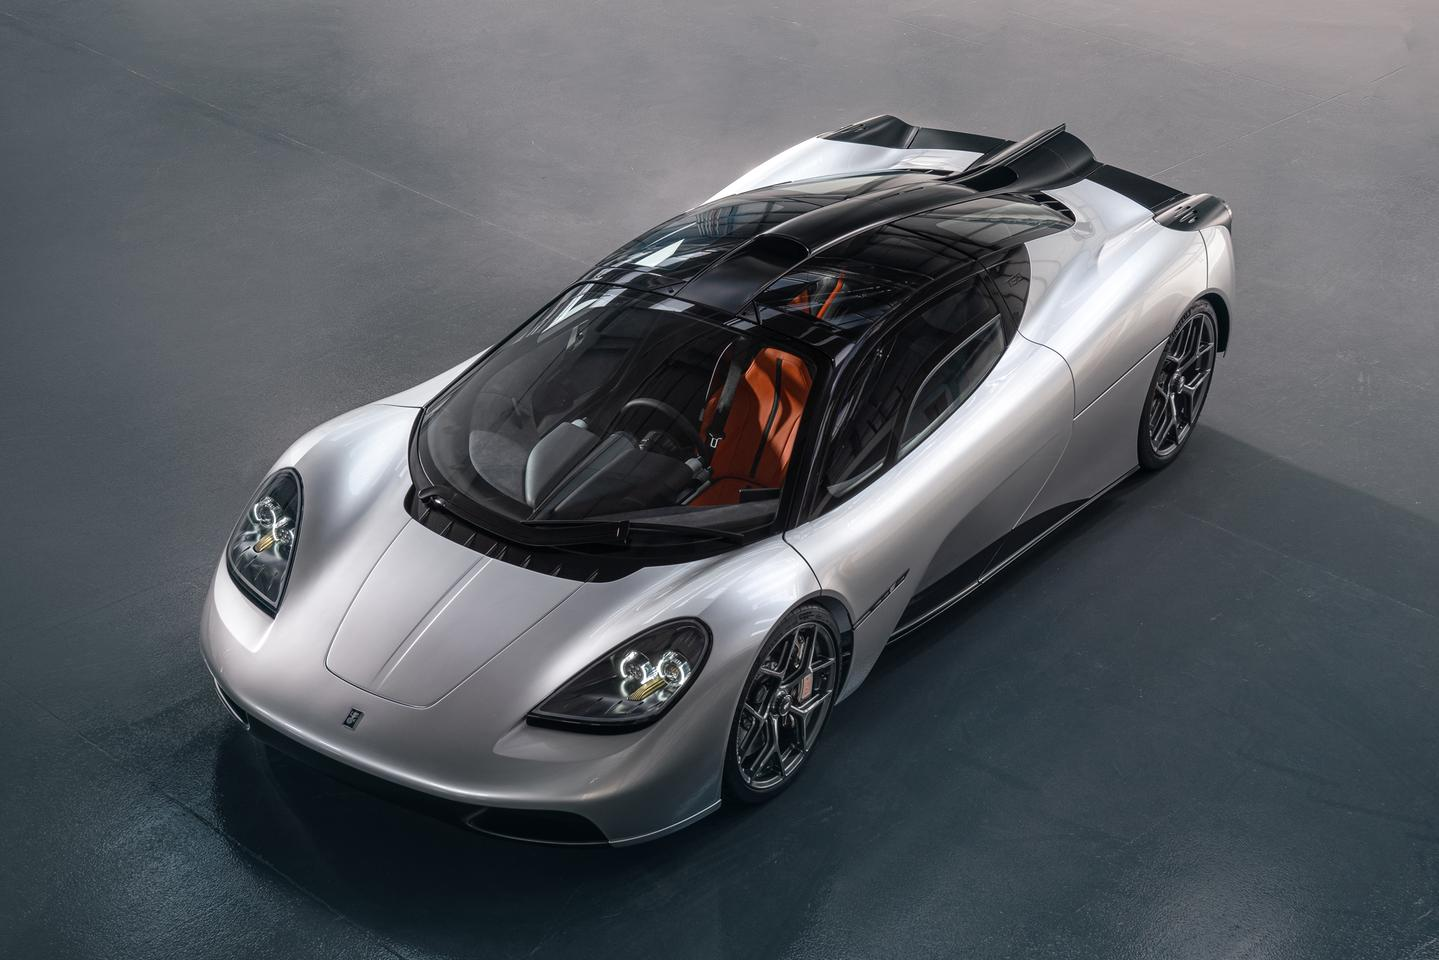 Gordon Murray's extraordinary T.50 supercar has finally launched